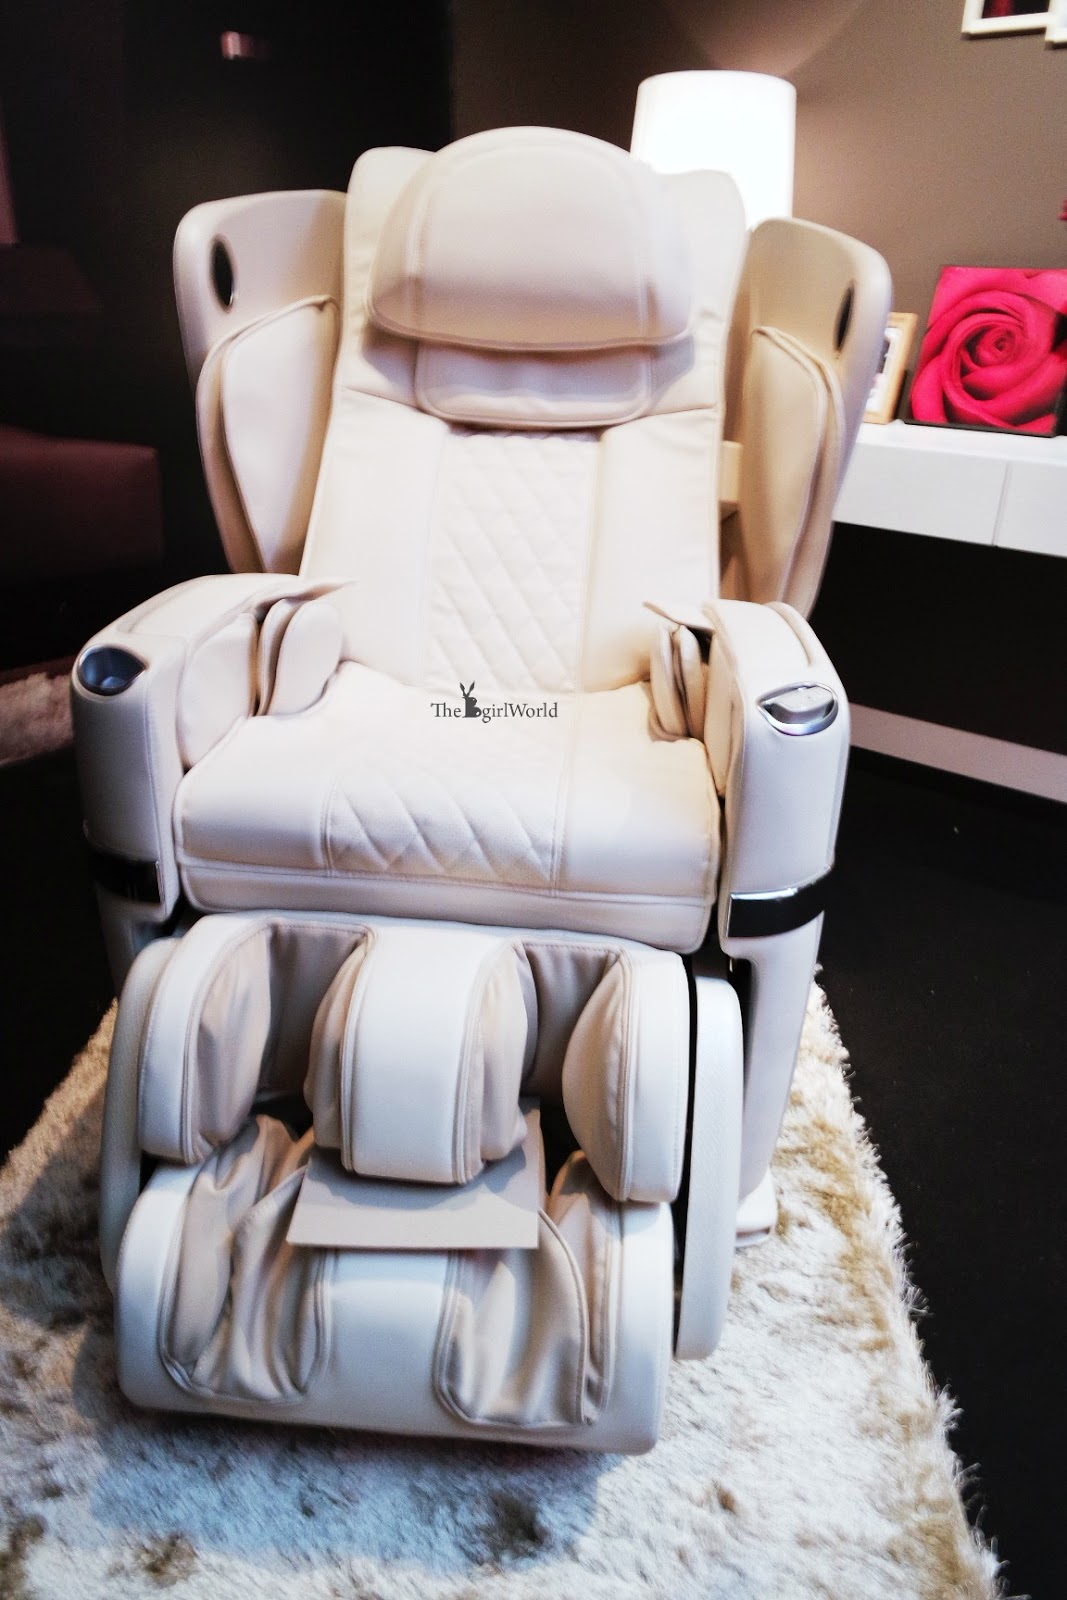 asian massage chairs outdoor wooden rocking canada osim ulove experience the world 39s most pampering